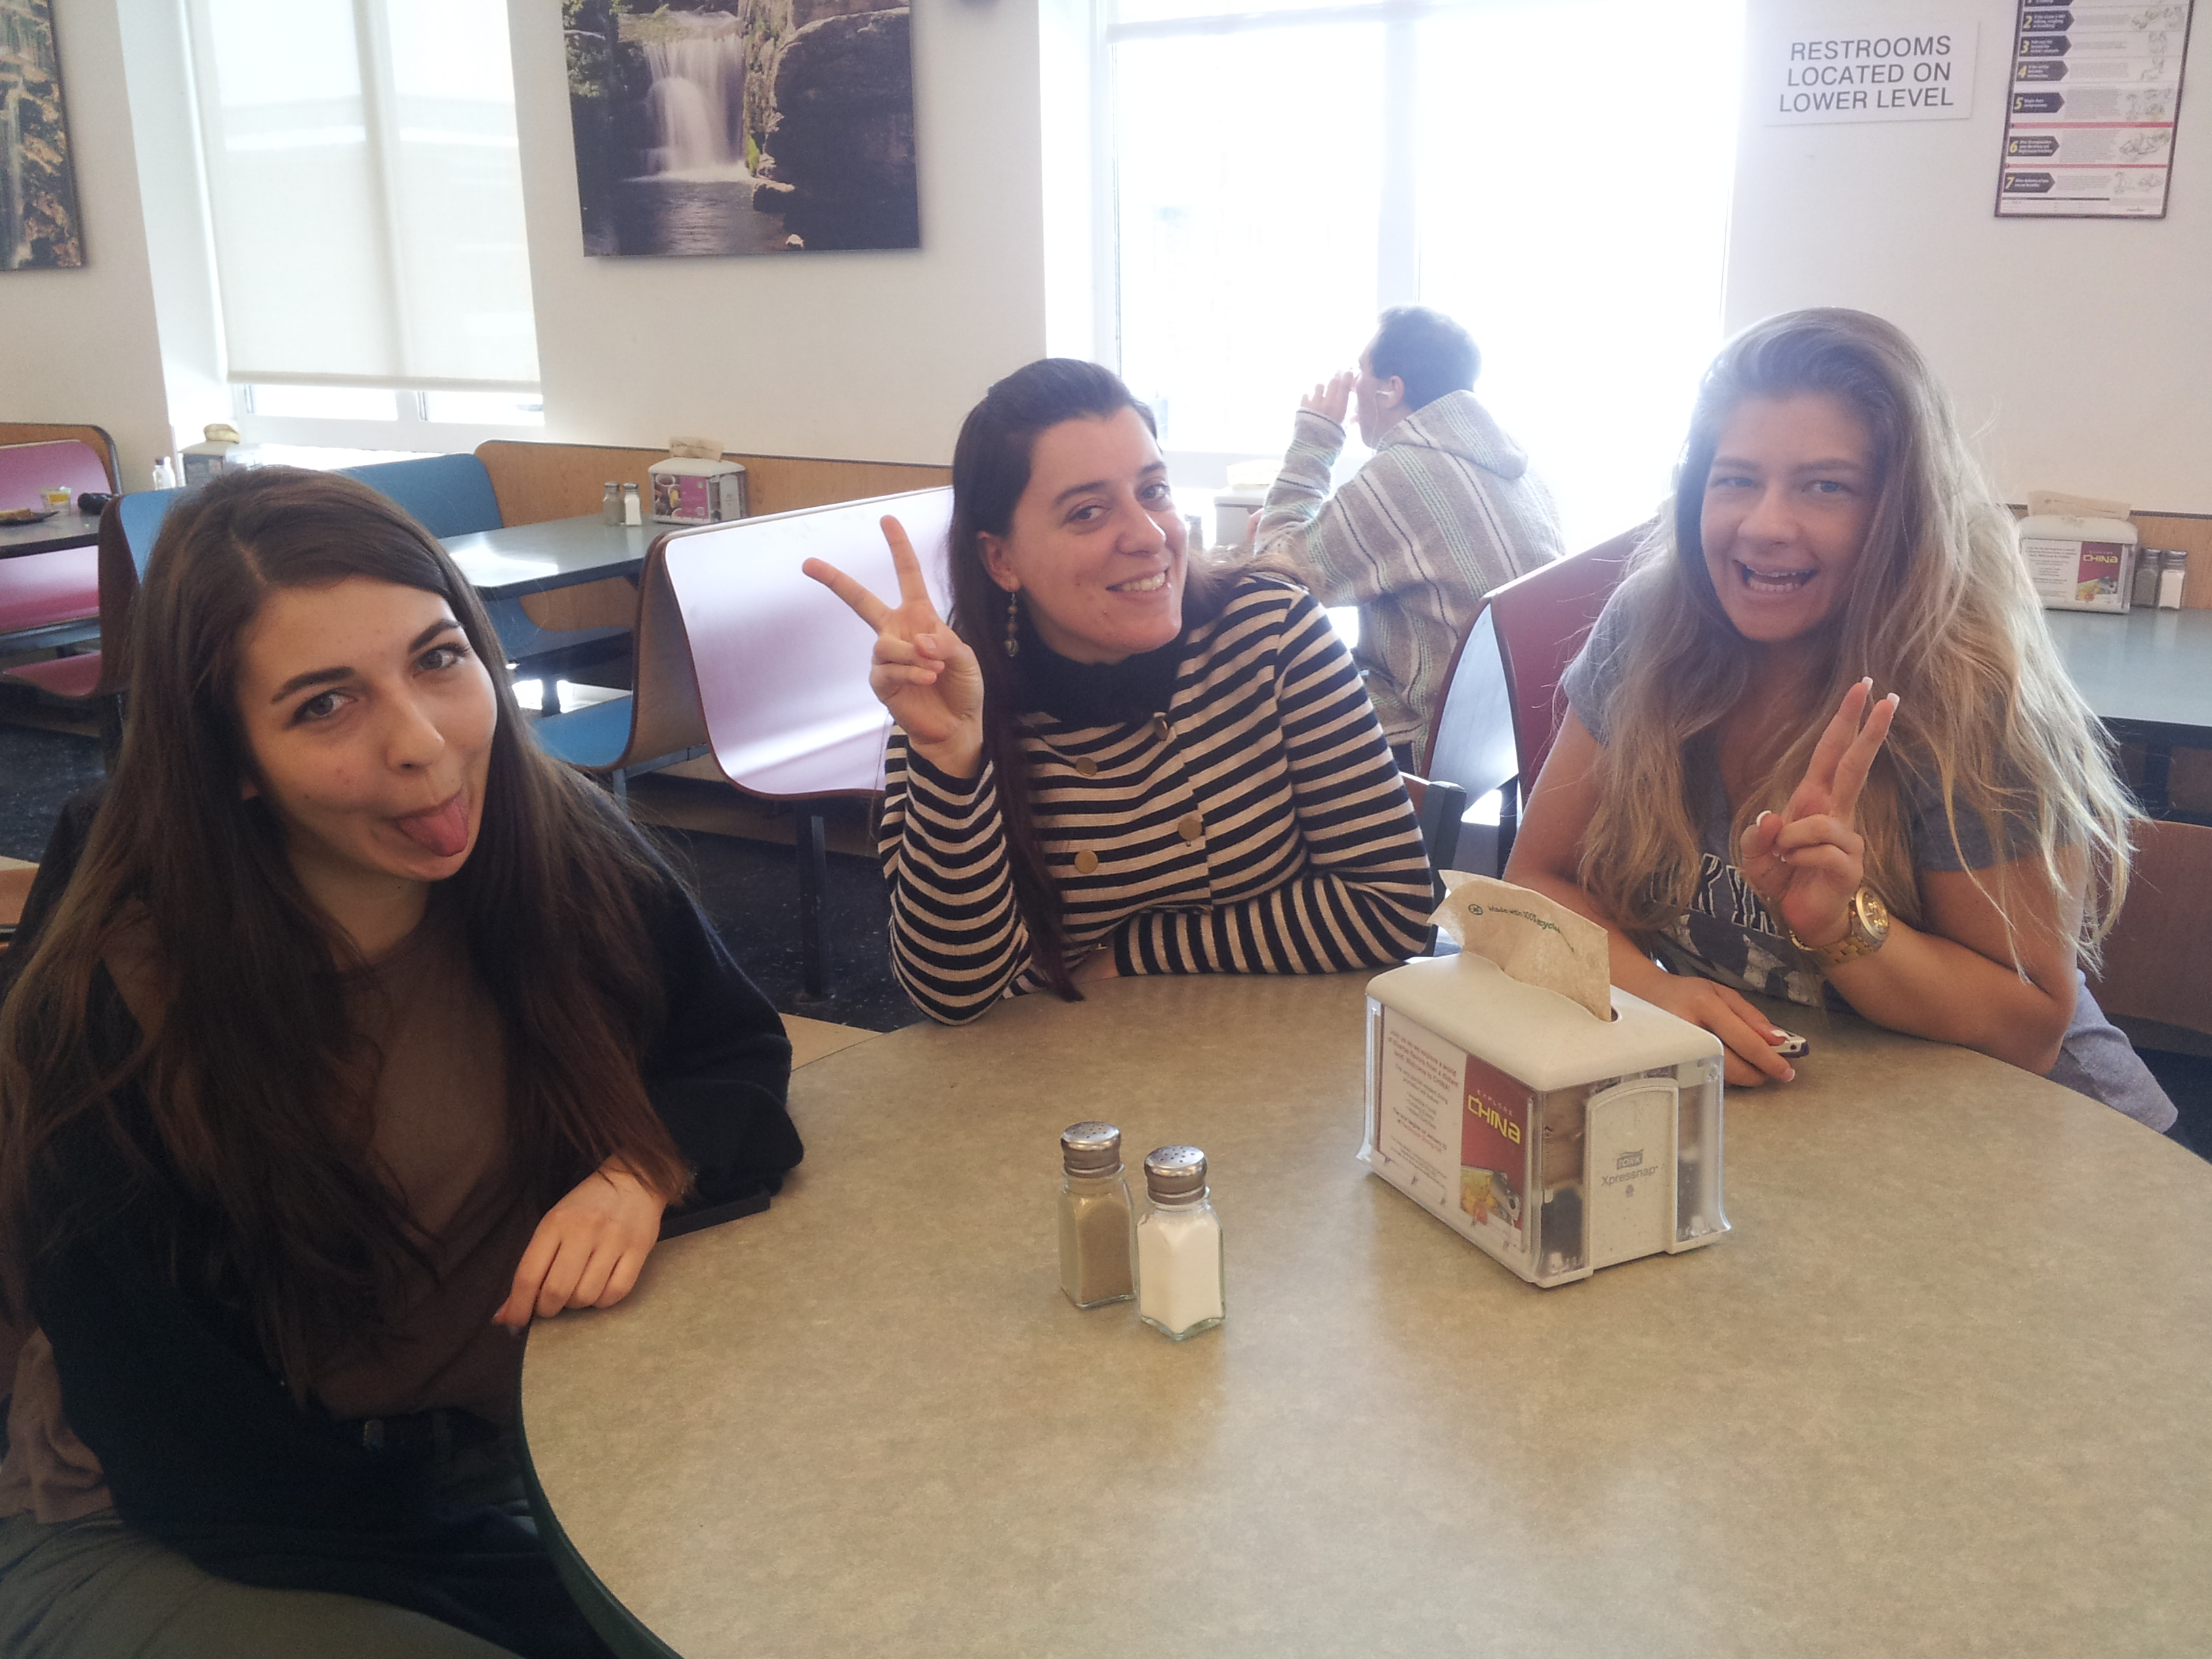 Basdemir, Aldanmas and Yilmaz act silly while having lunch together. Photo by Kelly Fay.